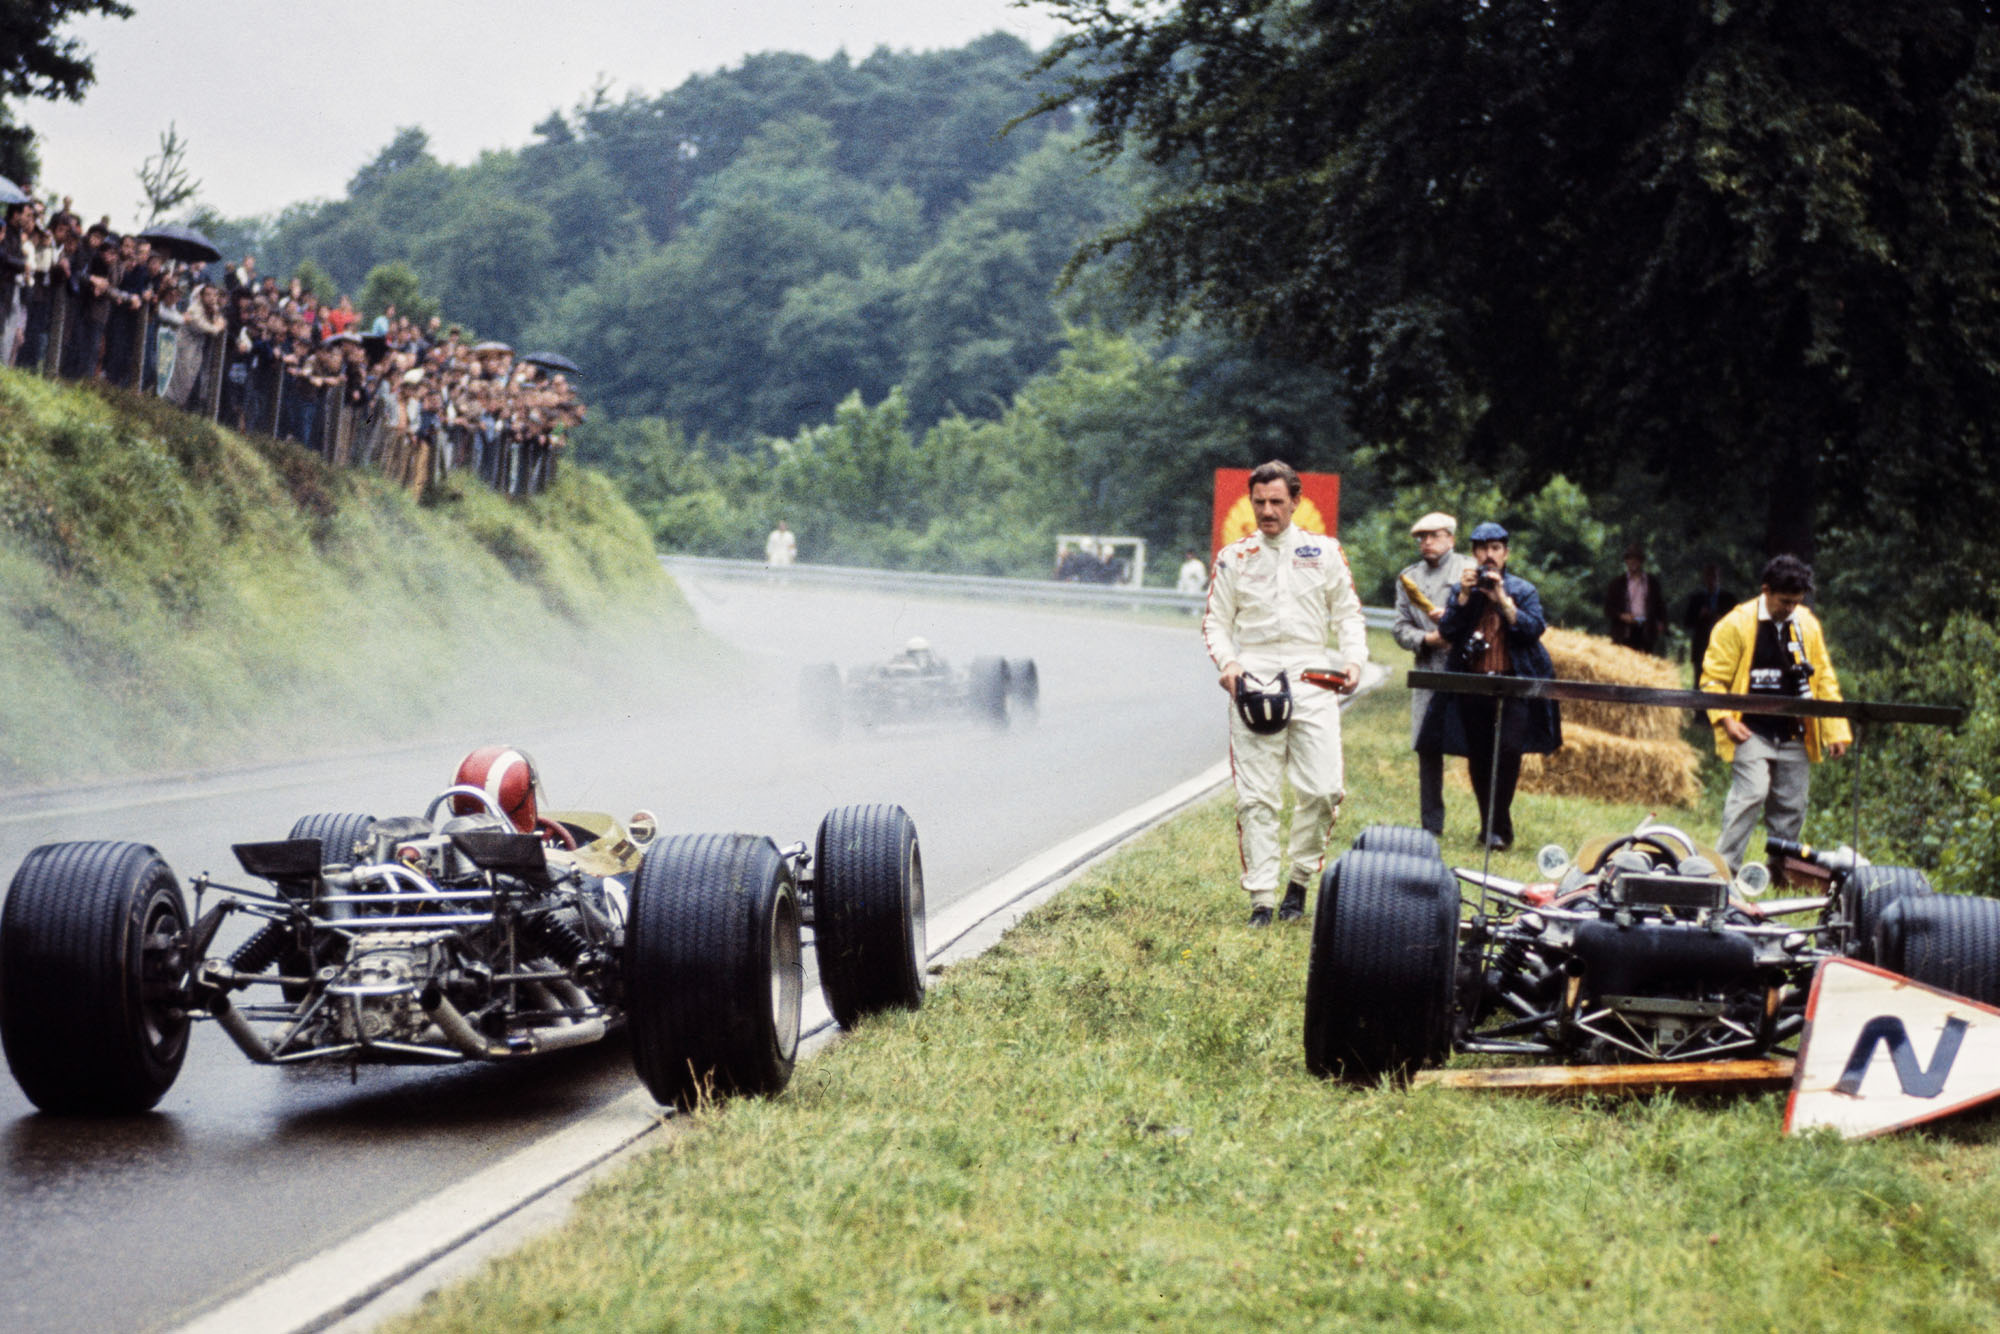 Jo Siffert, Lotus 49 Ford, pulls to the side of the track alongside retired Graham Hill, Lotus 49B Ford.